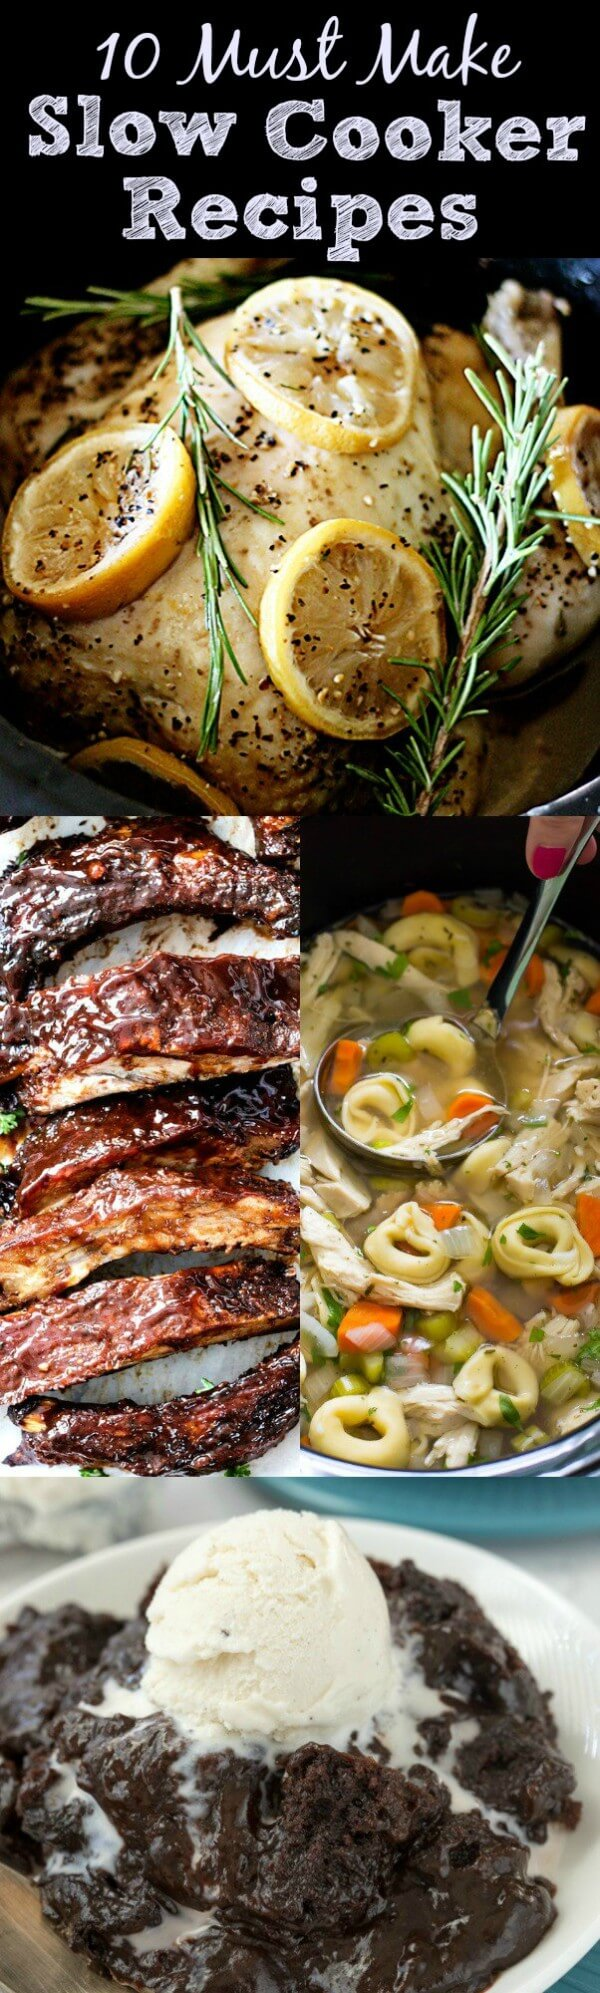 Chicken, Soup, Ribs and Brownie Pudding with Ice Cream